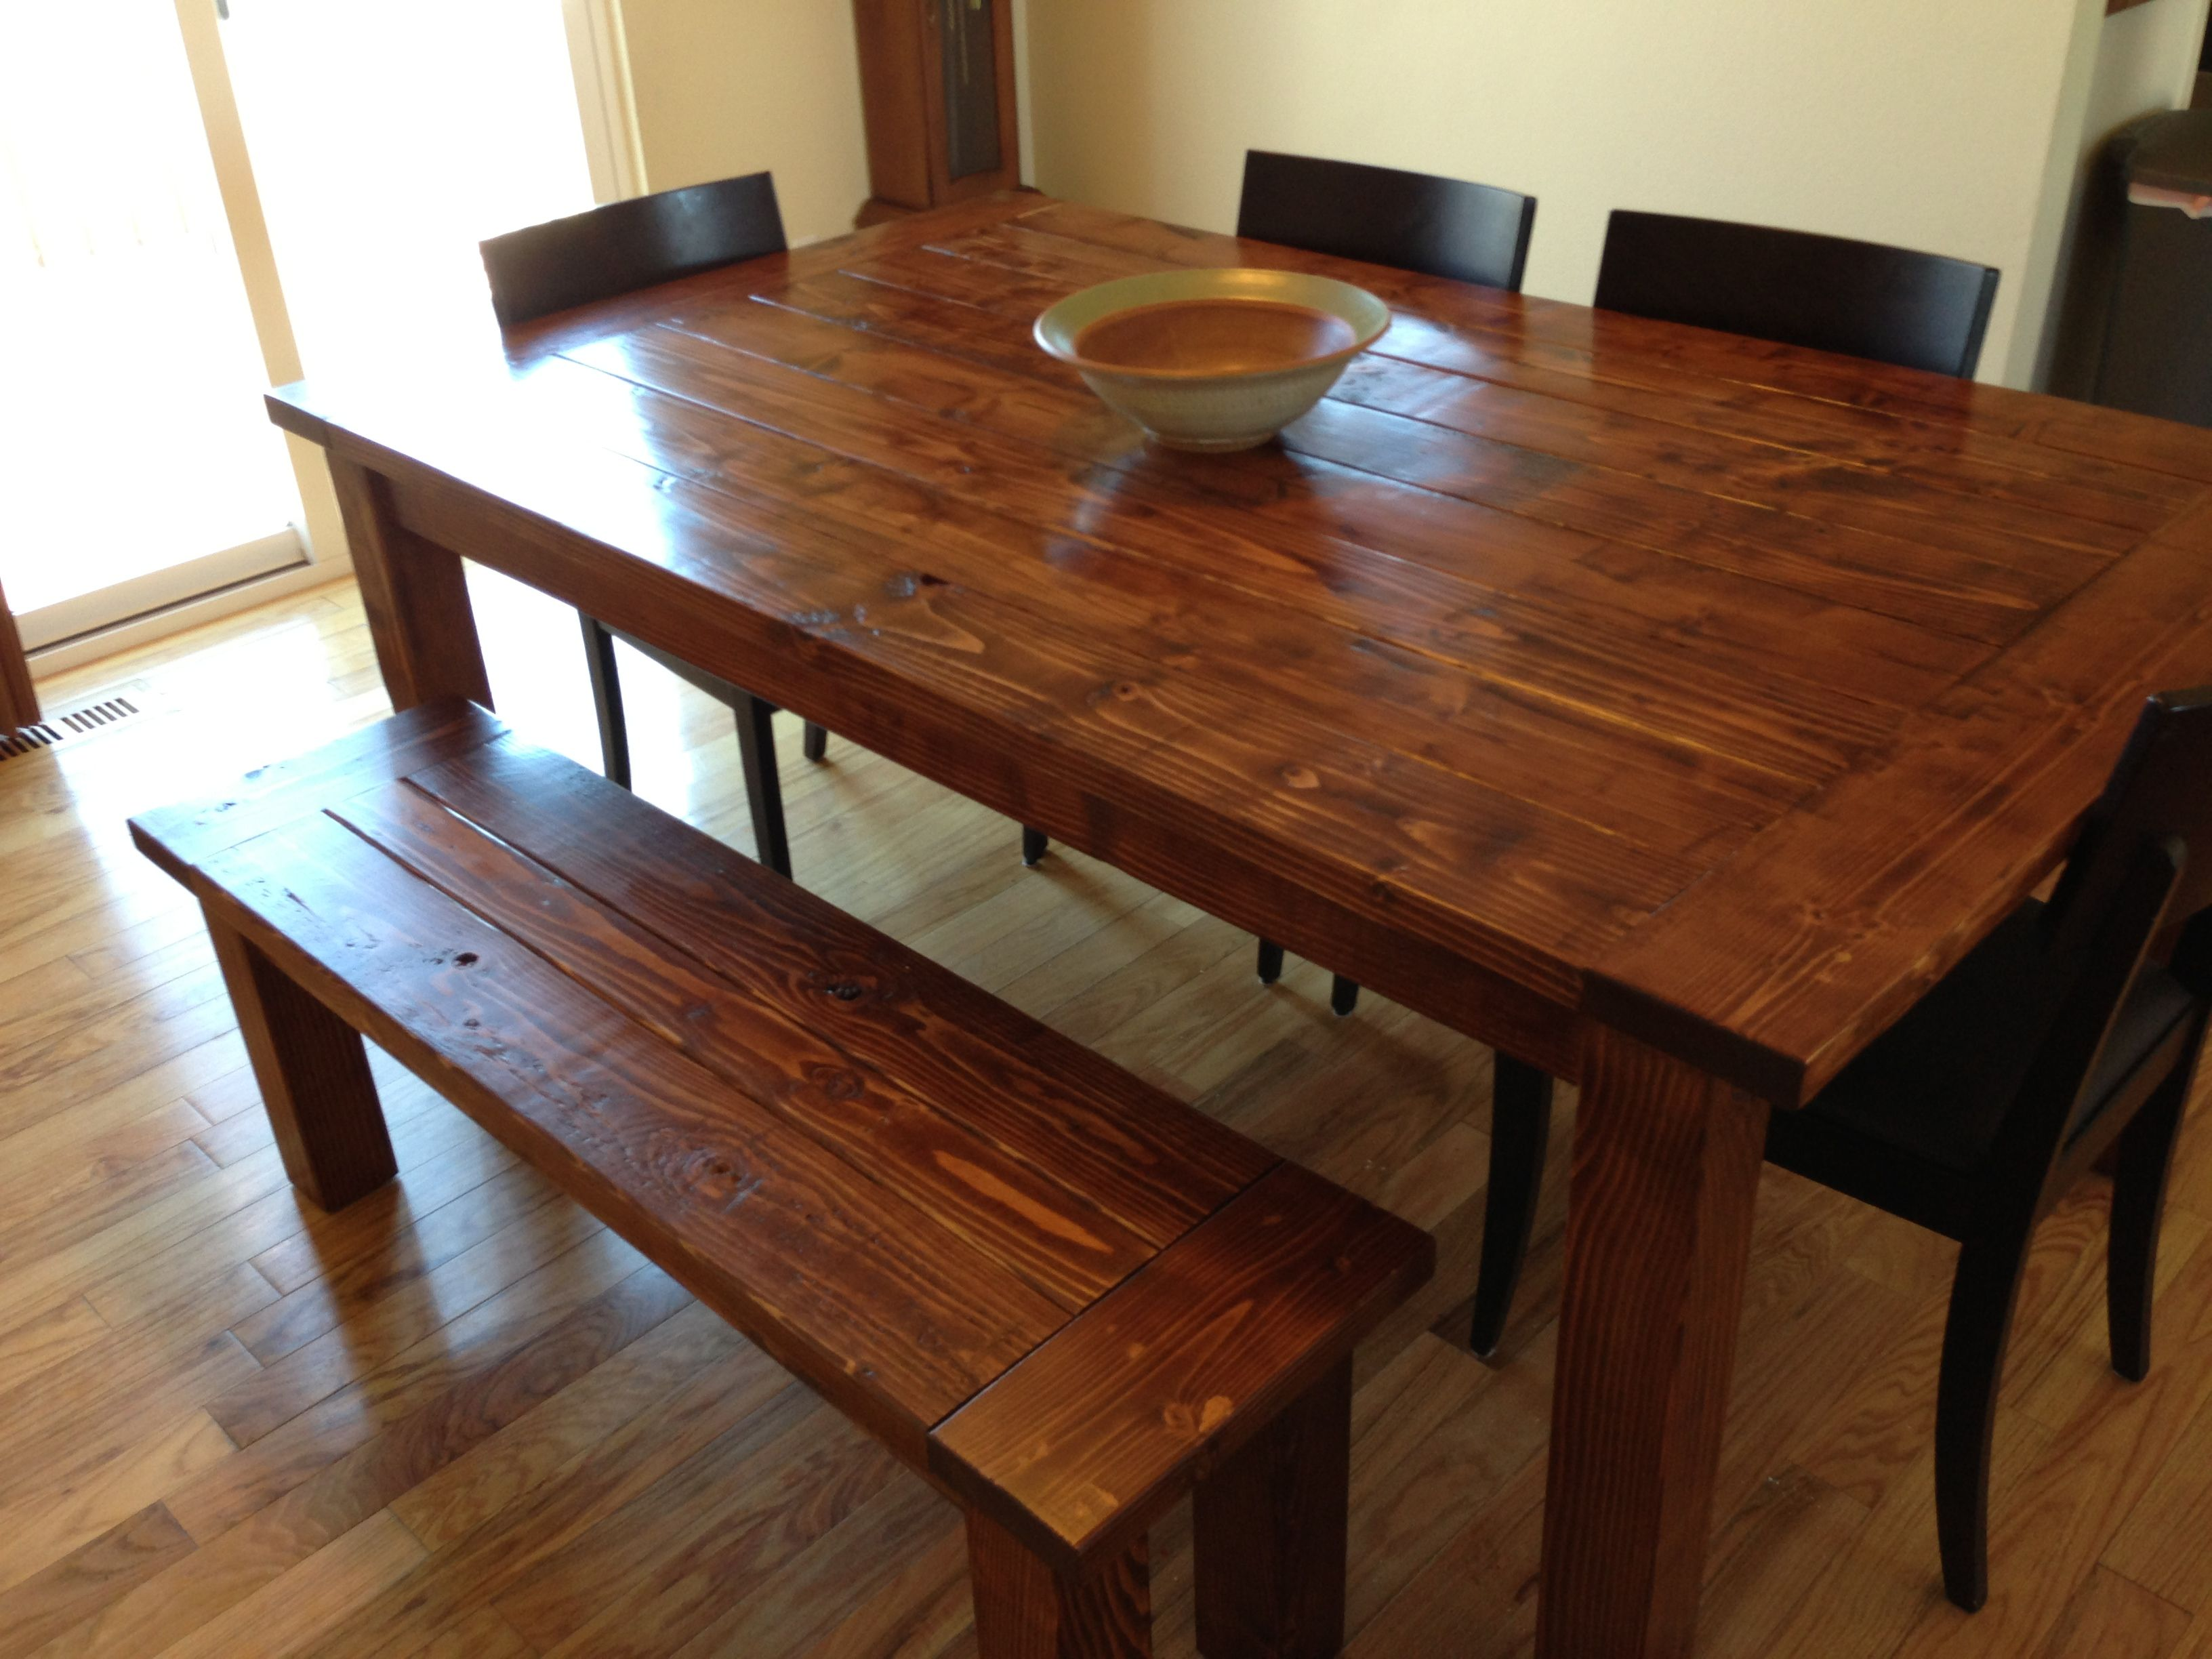 Farmhouse Table and bench Made from pine 2x6 2x4 and 4x4 s Stain is Minwax English Chestnut